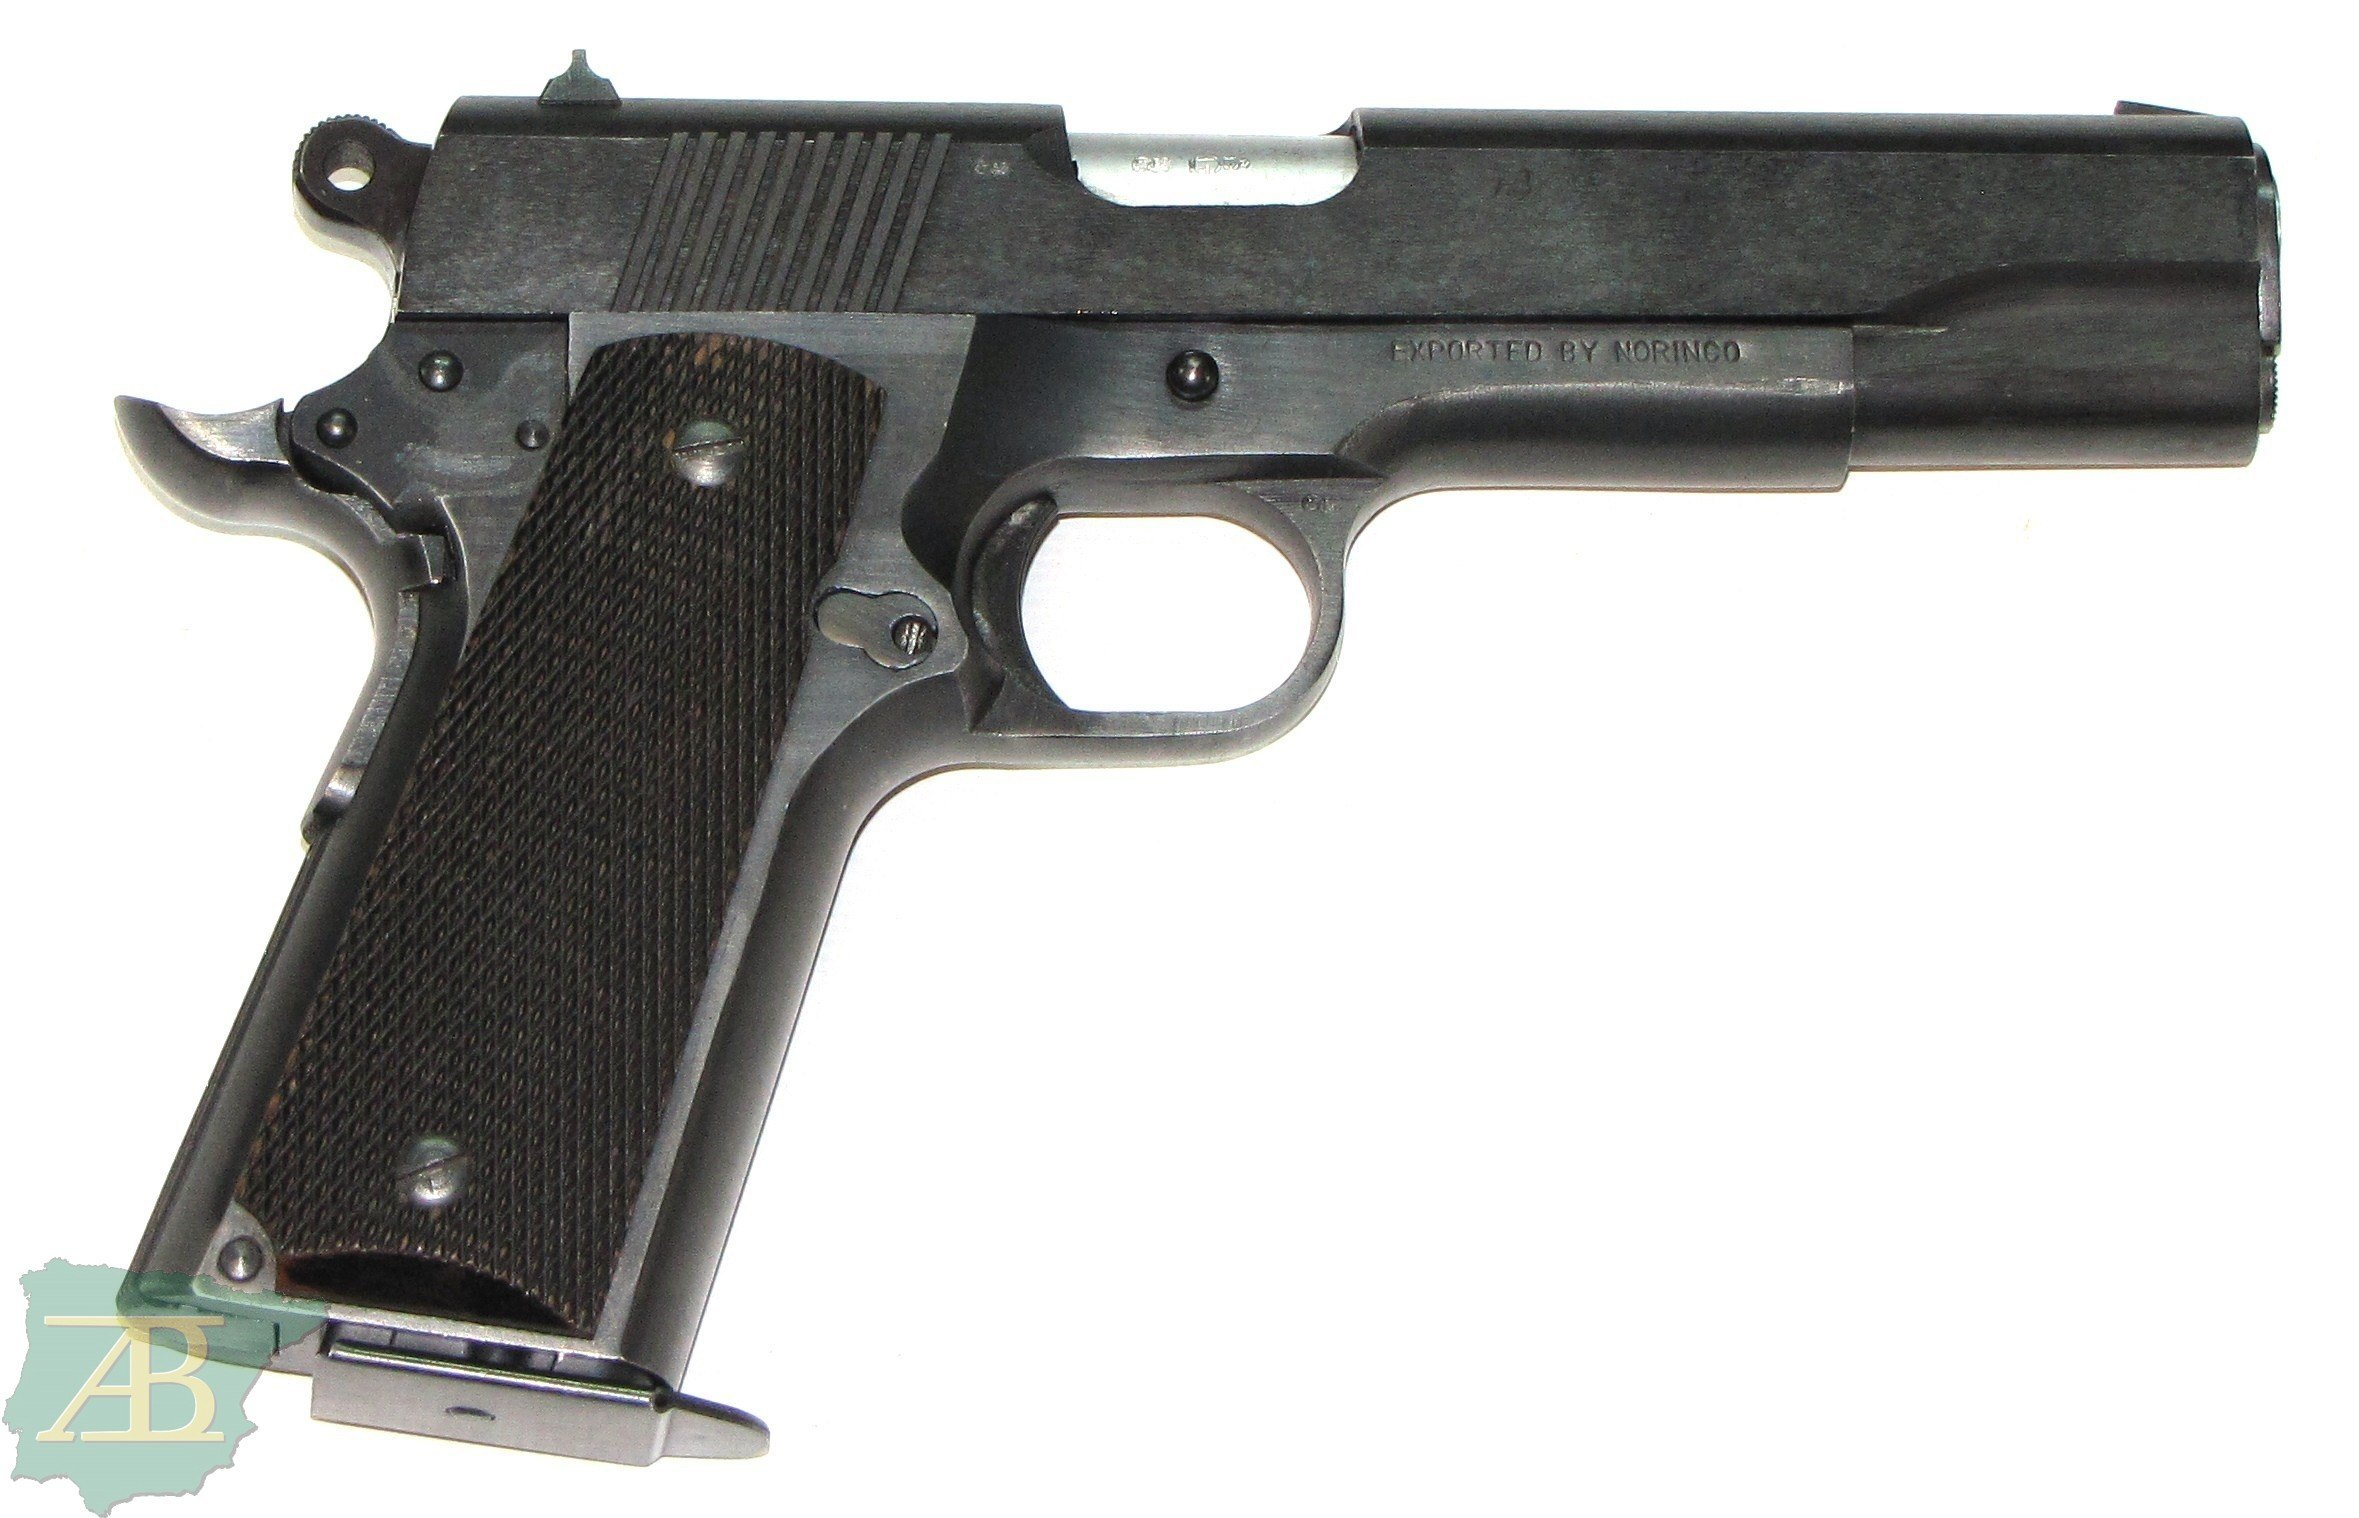 PISTOLA NORINCO 9 MM PB Ref. REP2019/472